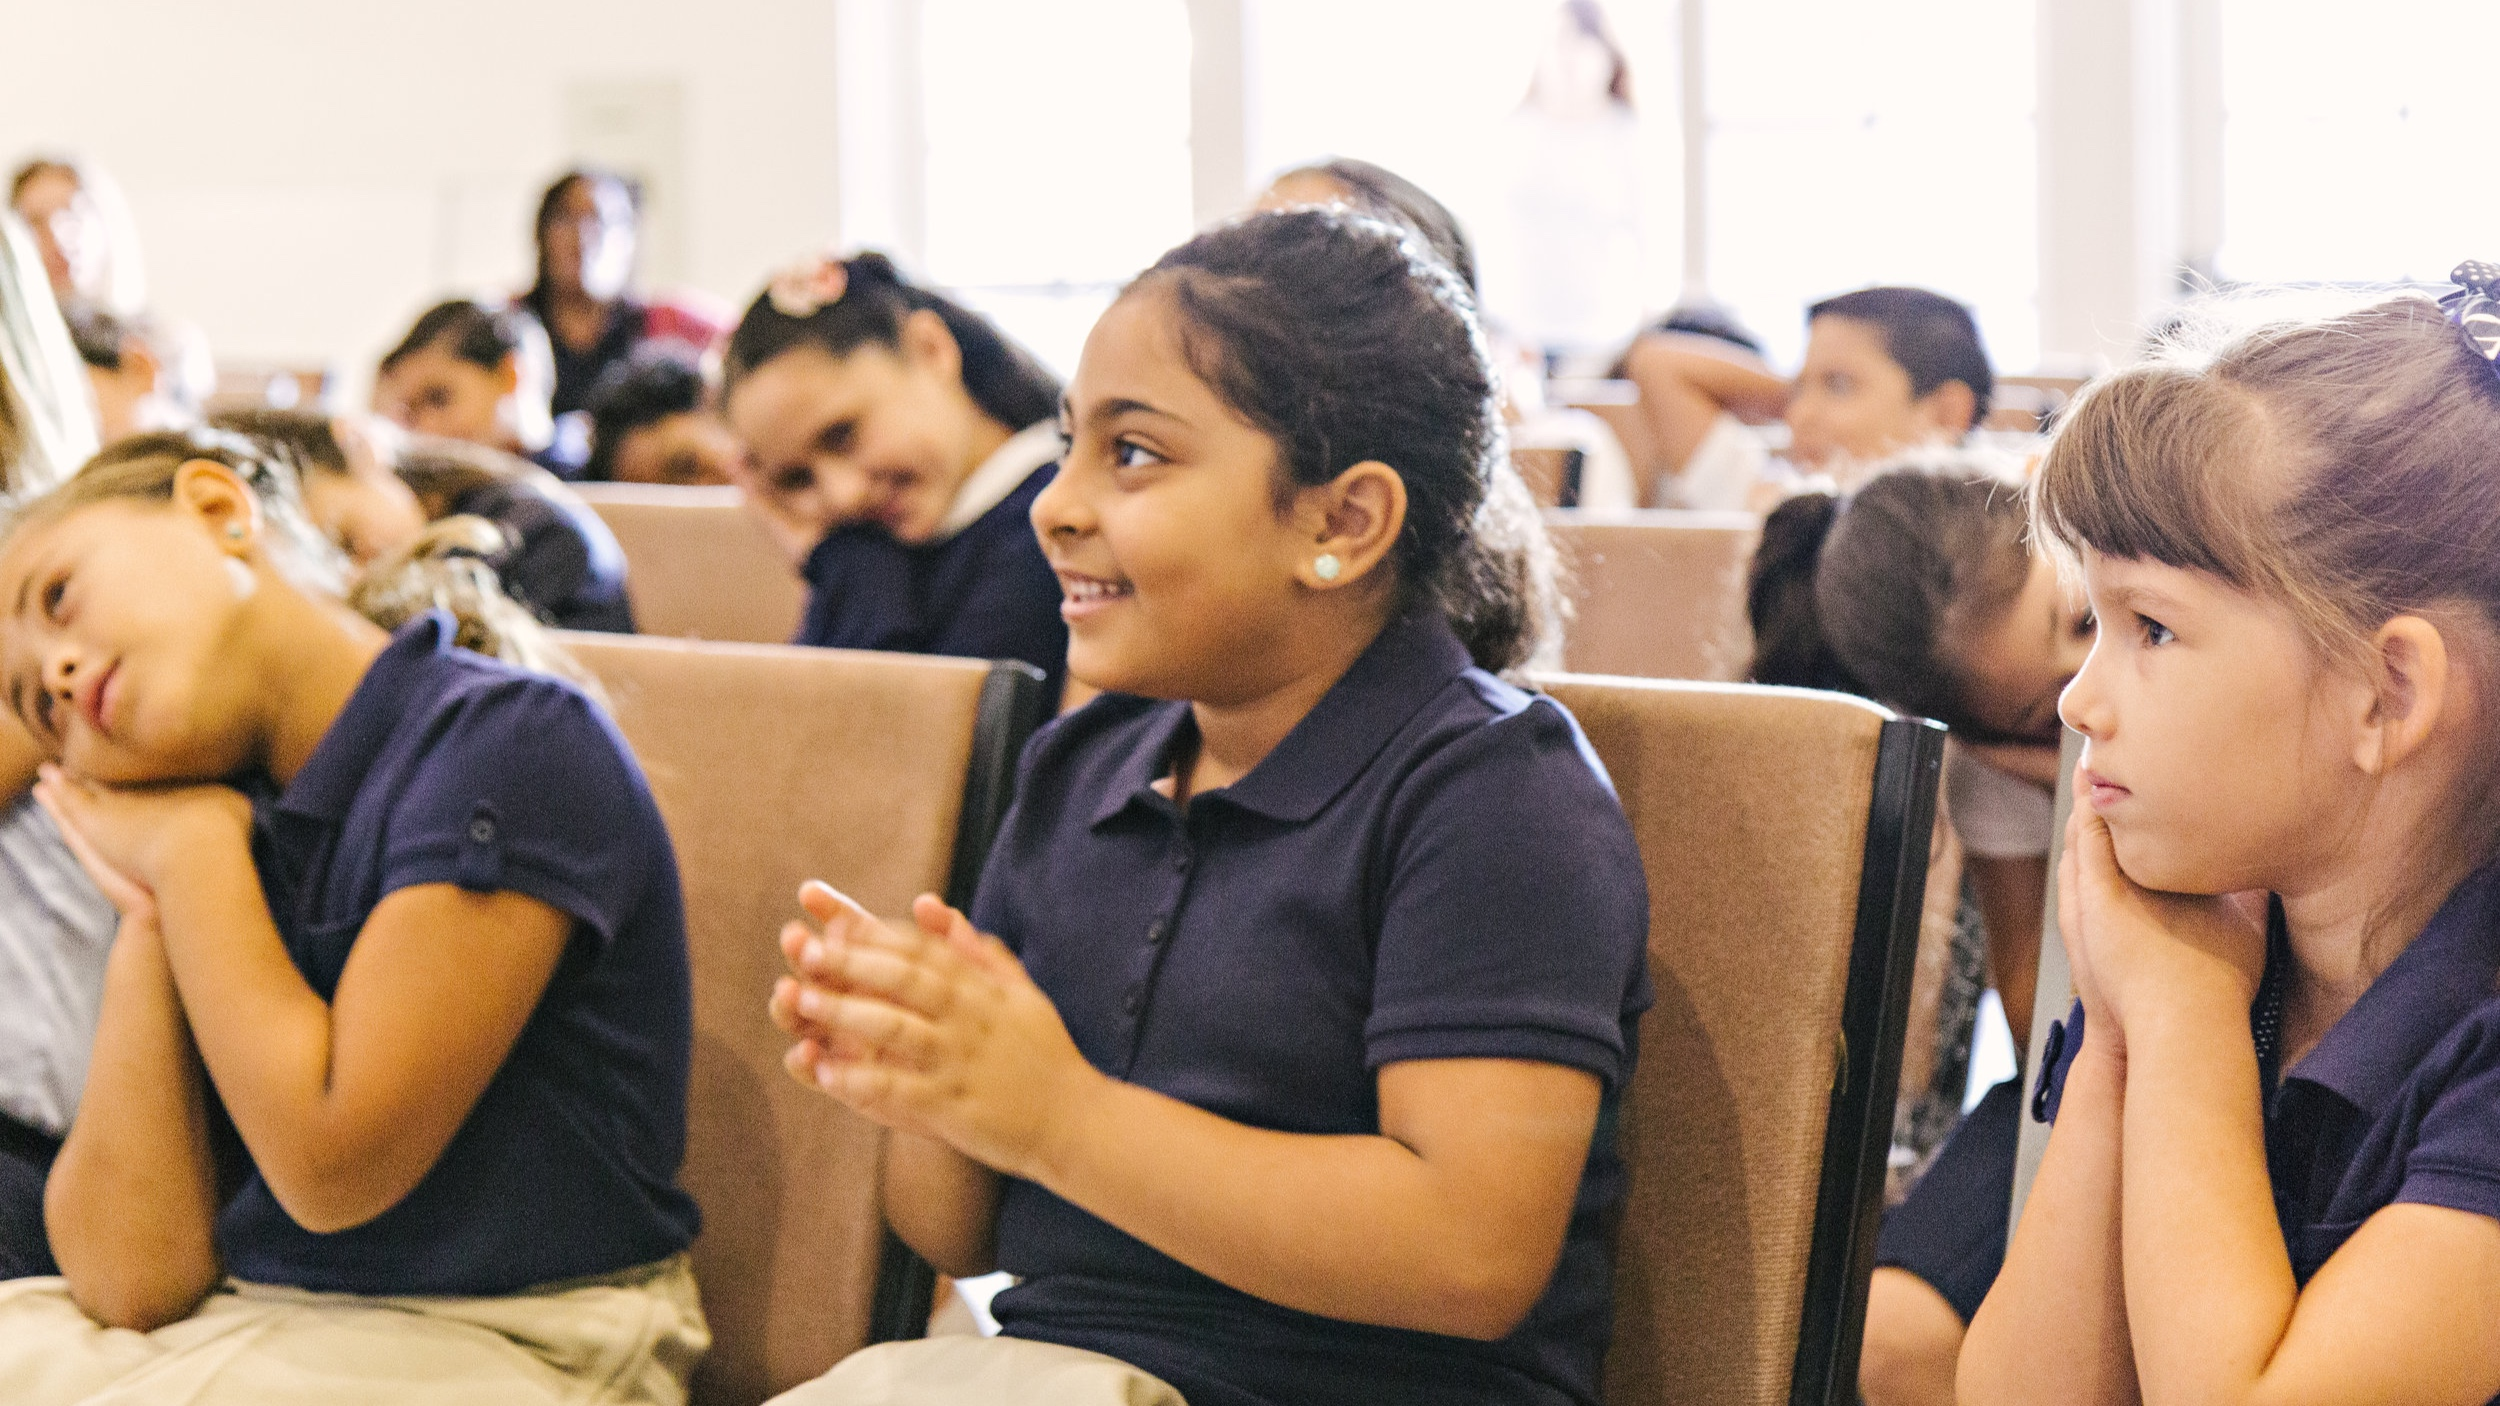 Bible Class - We instill Christian values in our students by attending bible class each week. Students learn a verse and hear a bible story in a fun and comfortable atmosphere.